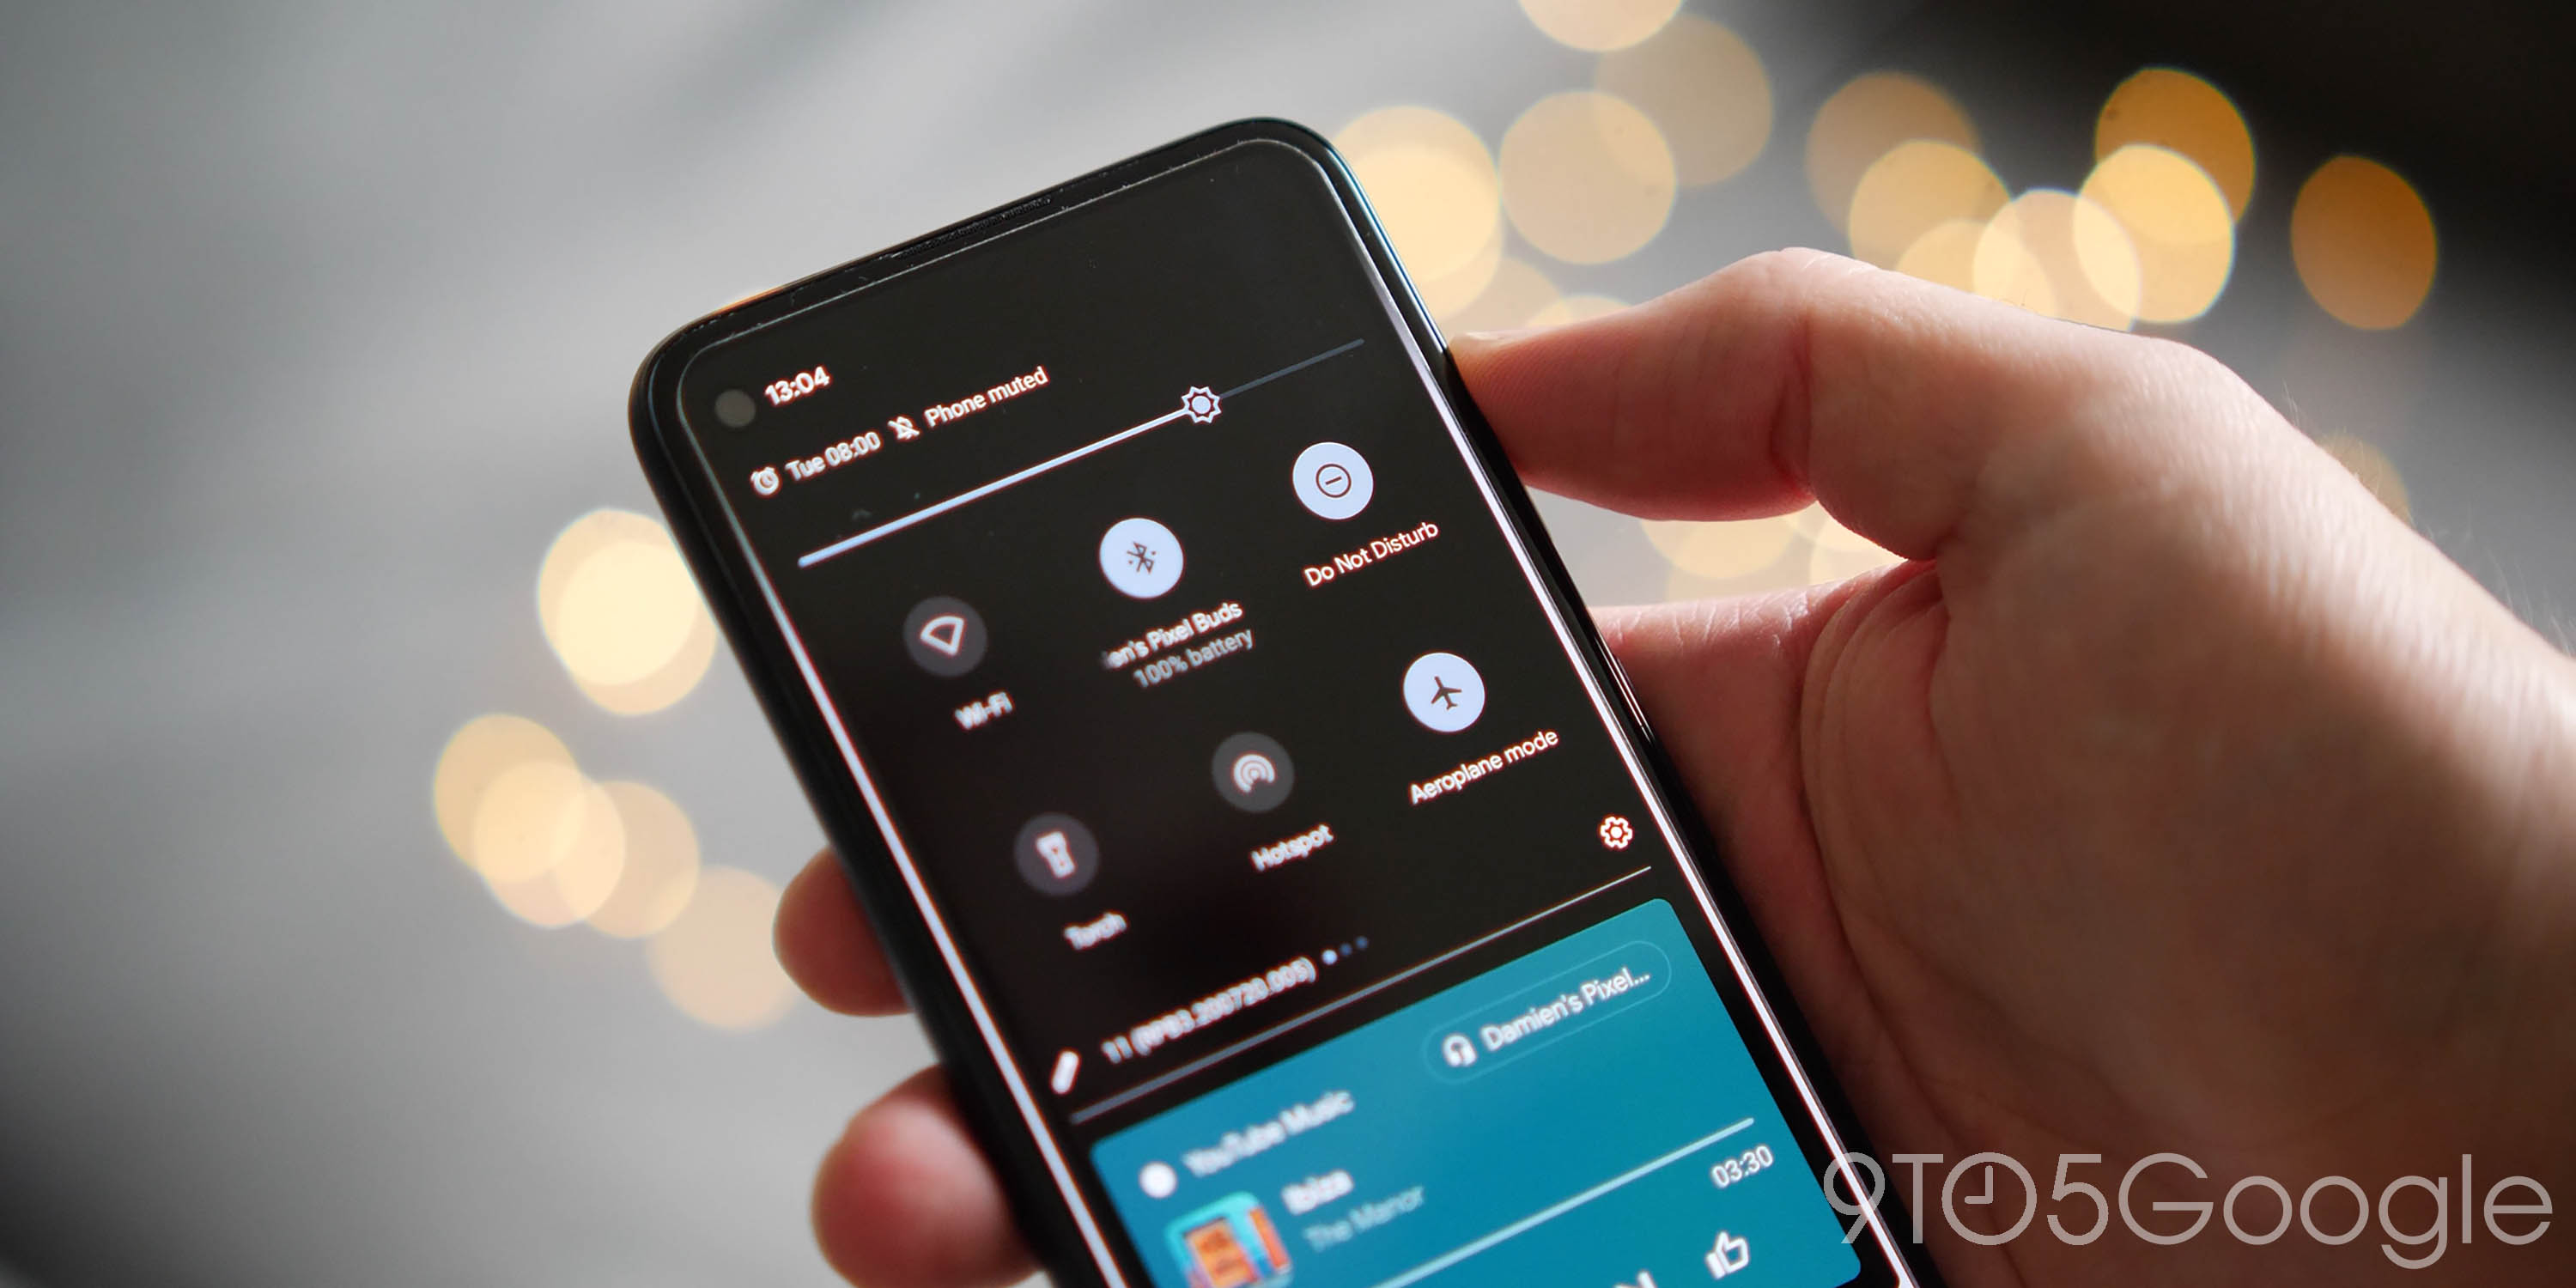 android 12 wish list - notification shade toggles